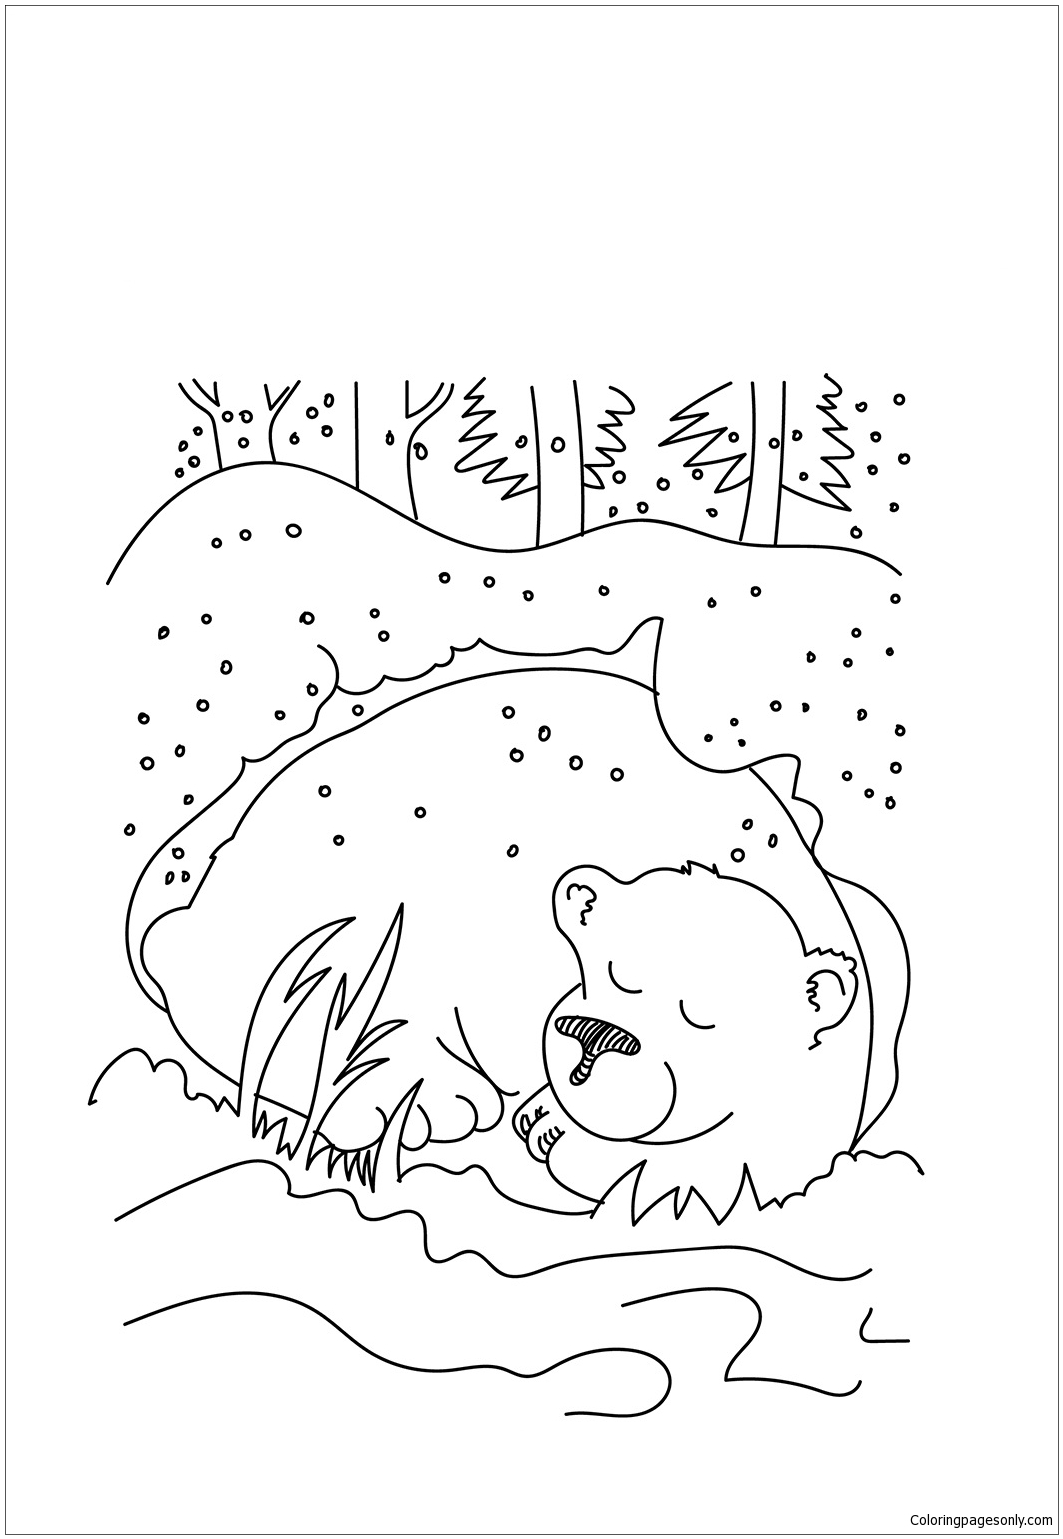 Bear Hibernating Coloring Page Free Coloring Pages Online